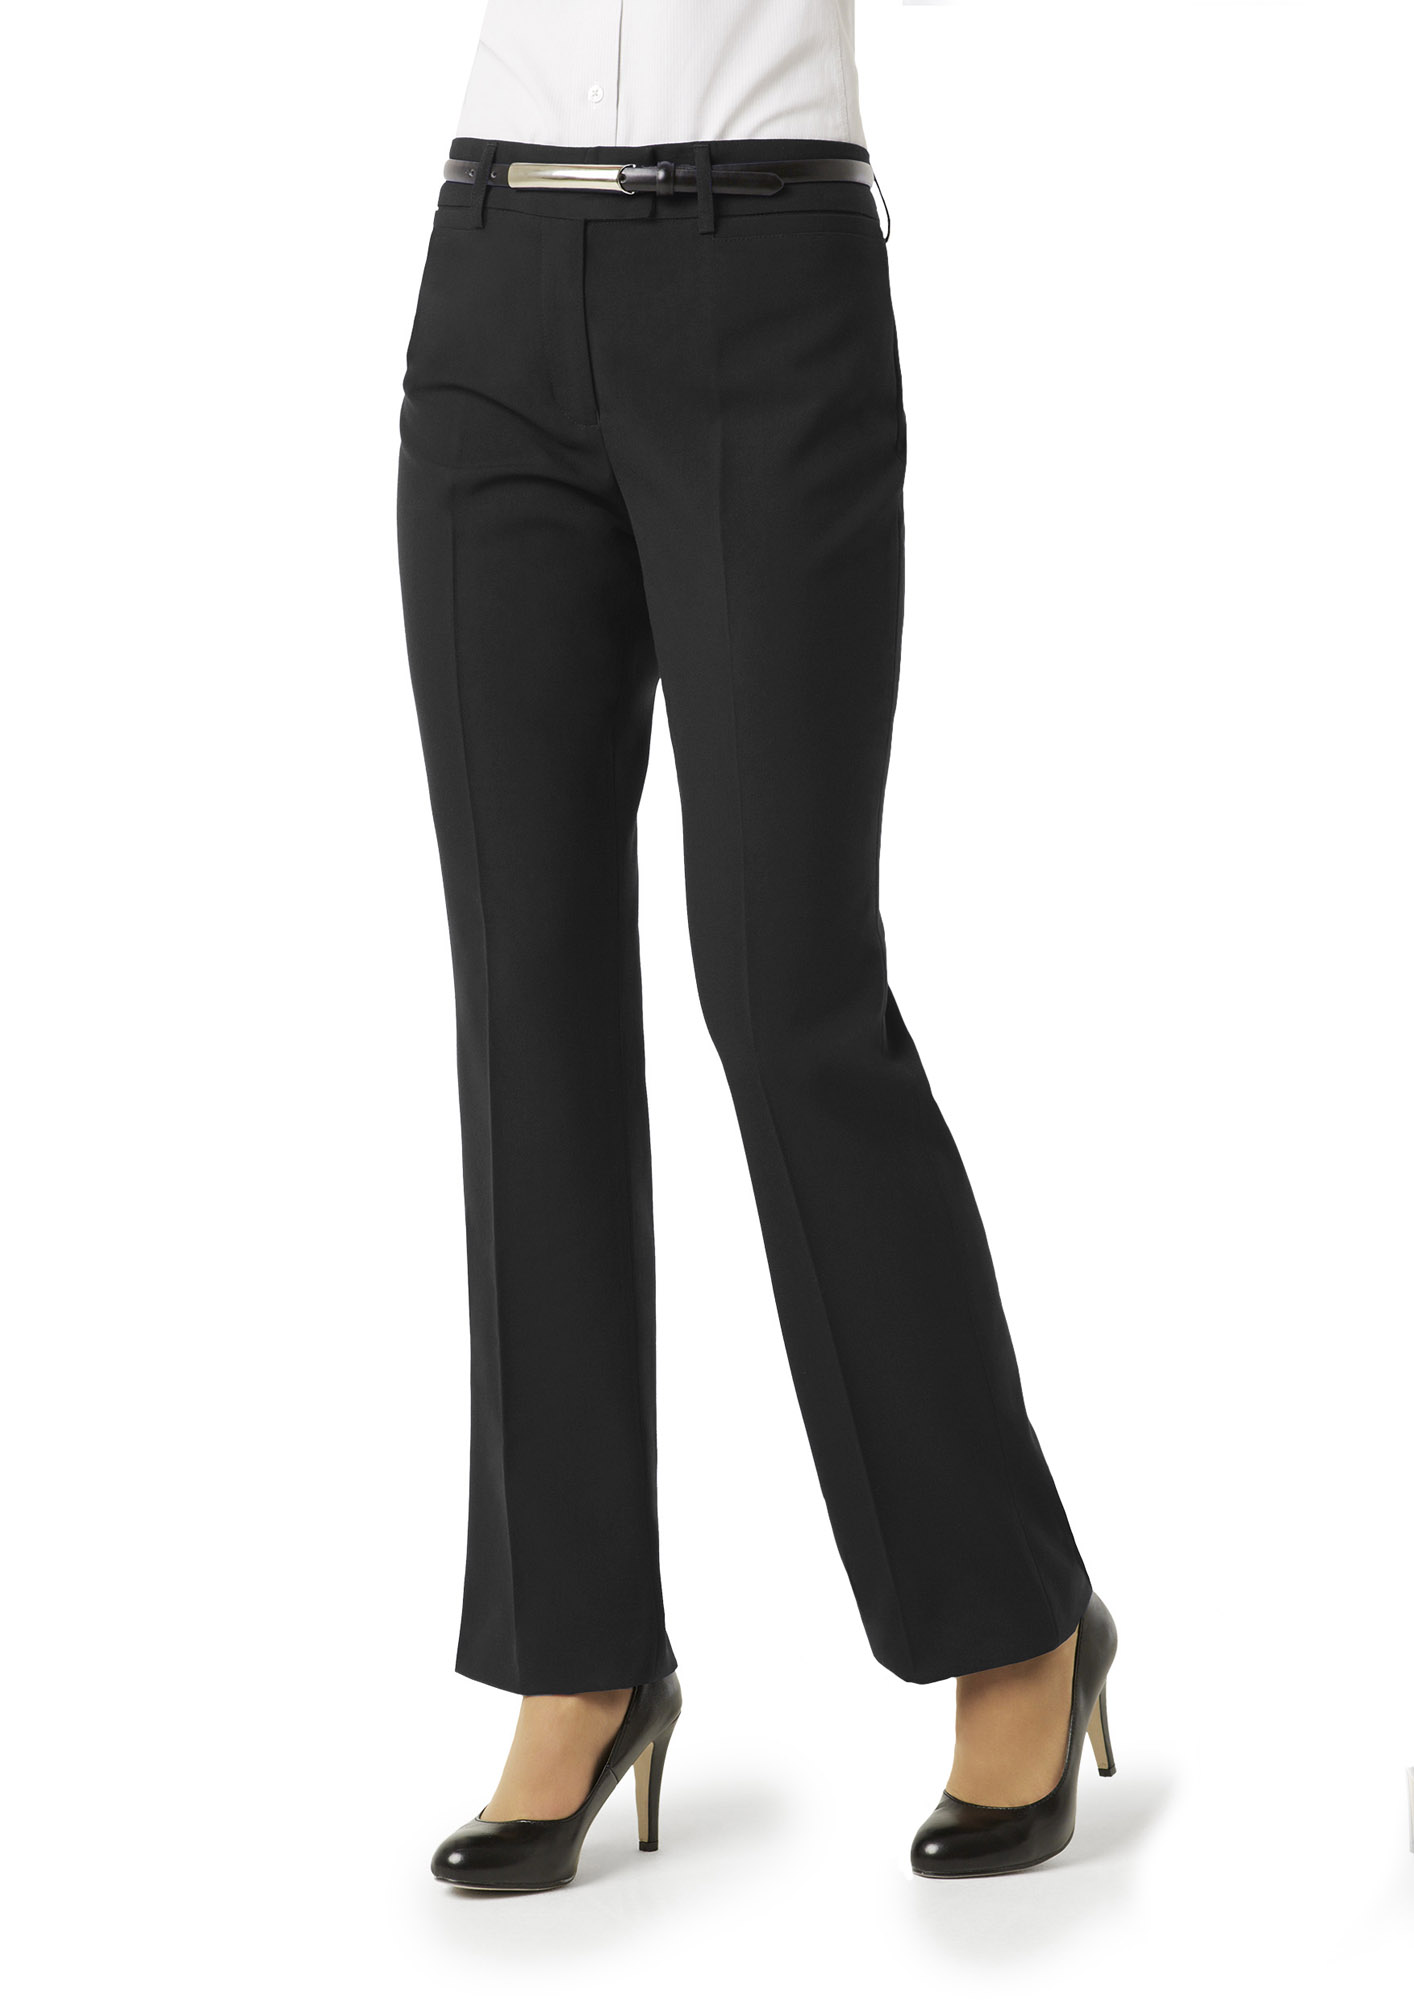 Ladies Uniform Pants 43